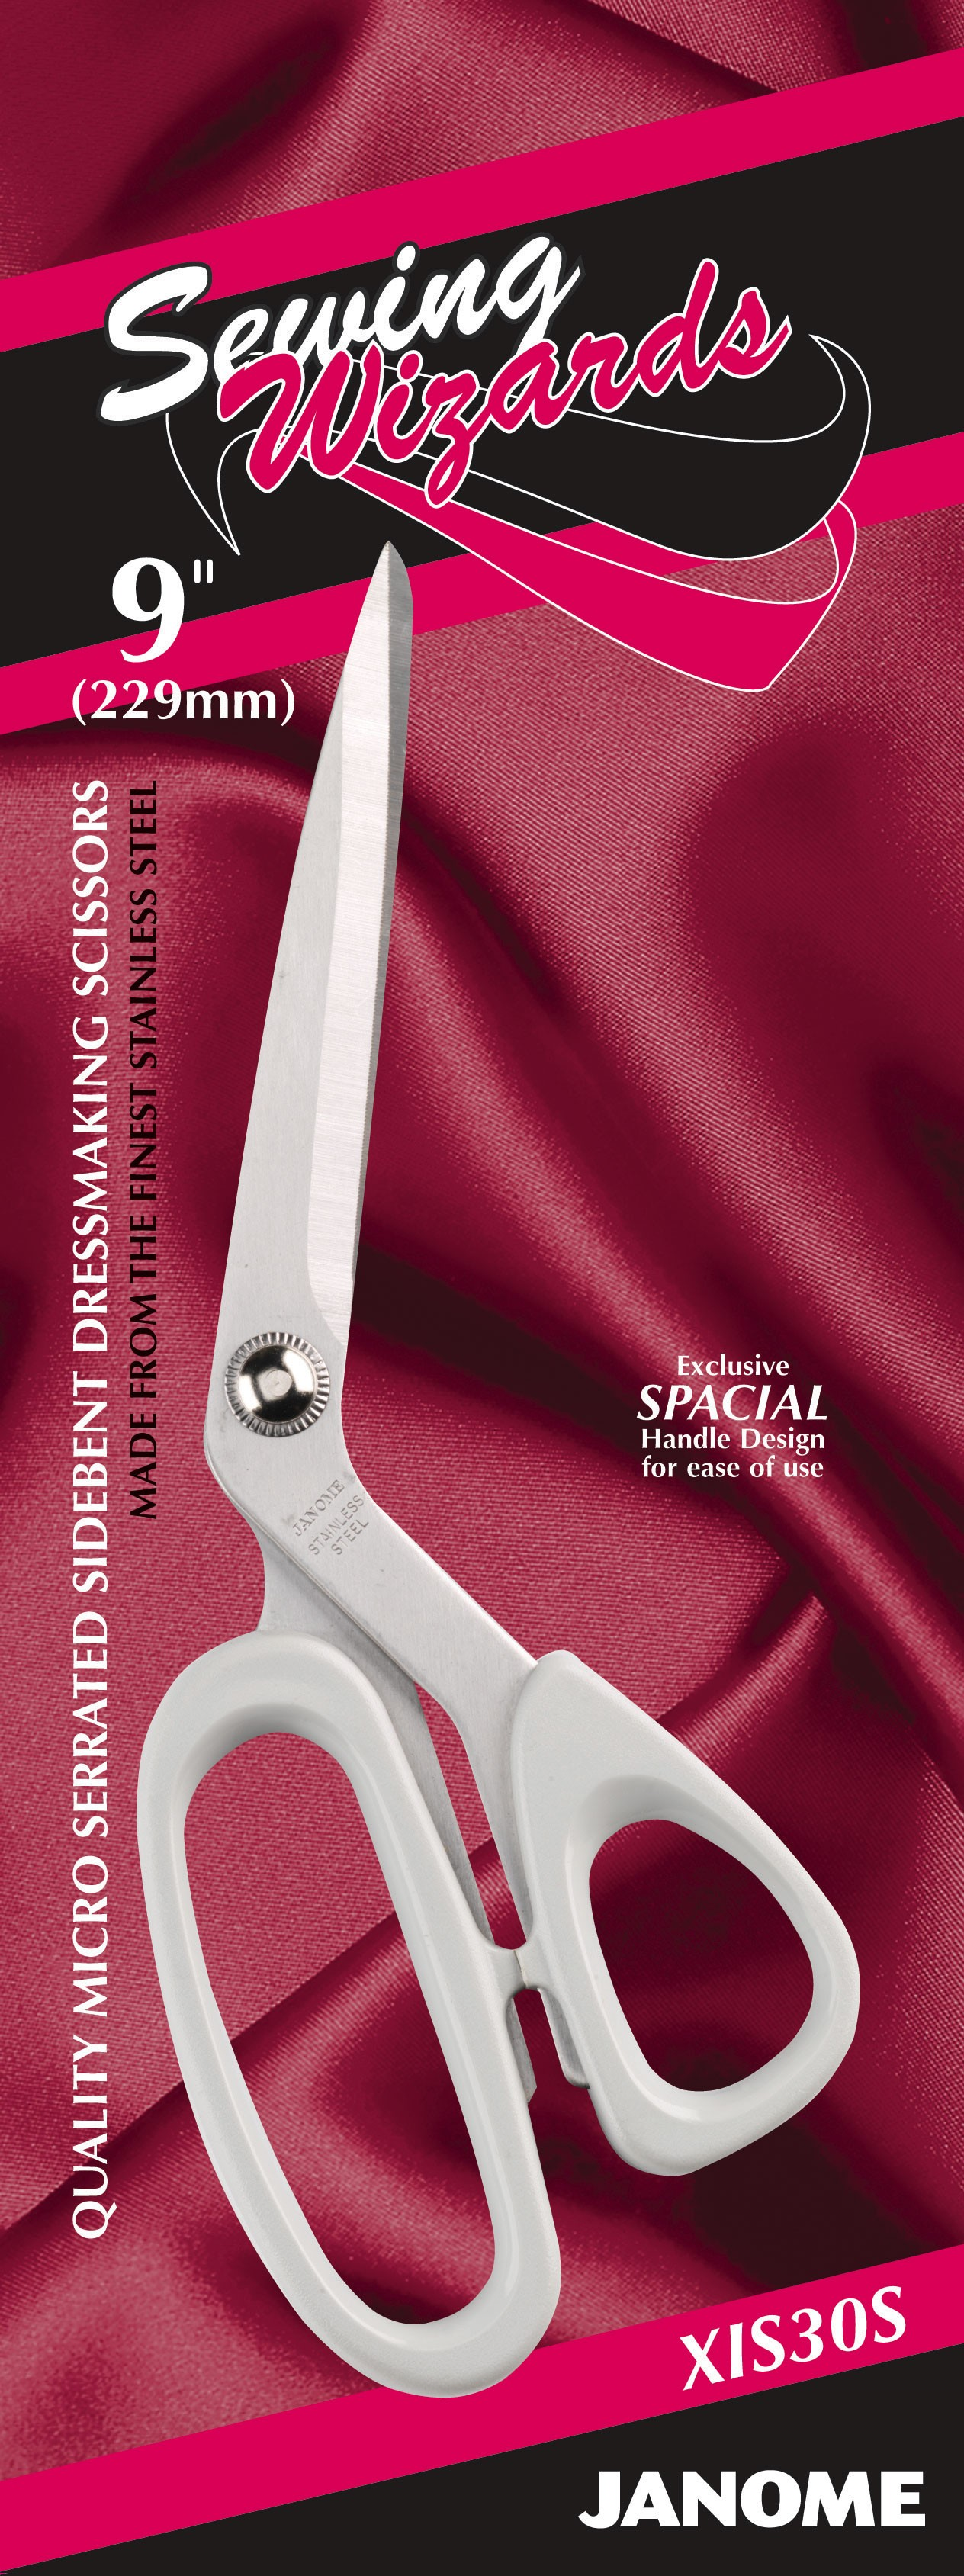 9 Inch Sewing Wizards - Dressmaking (Serrated)